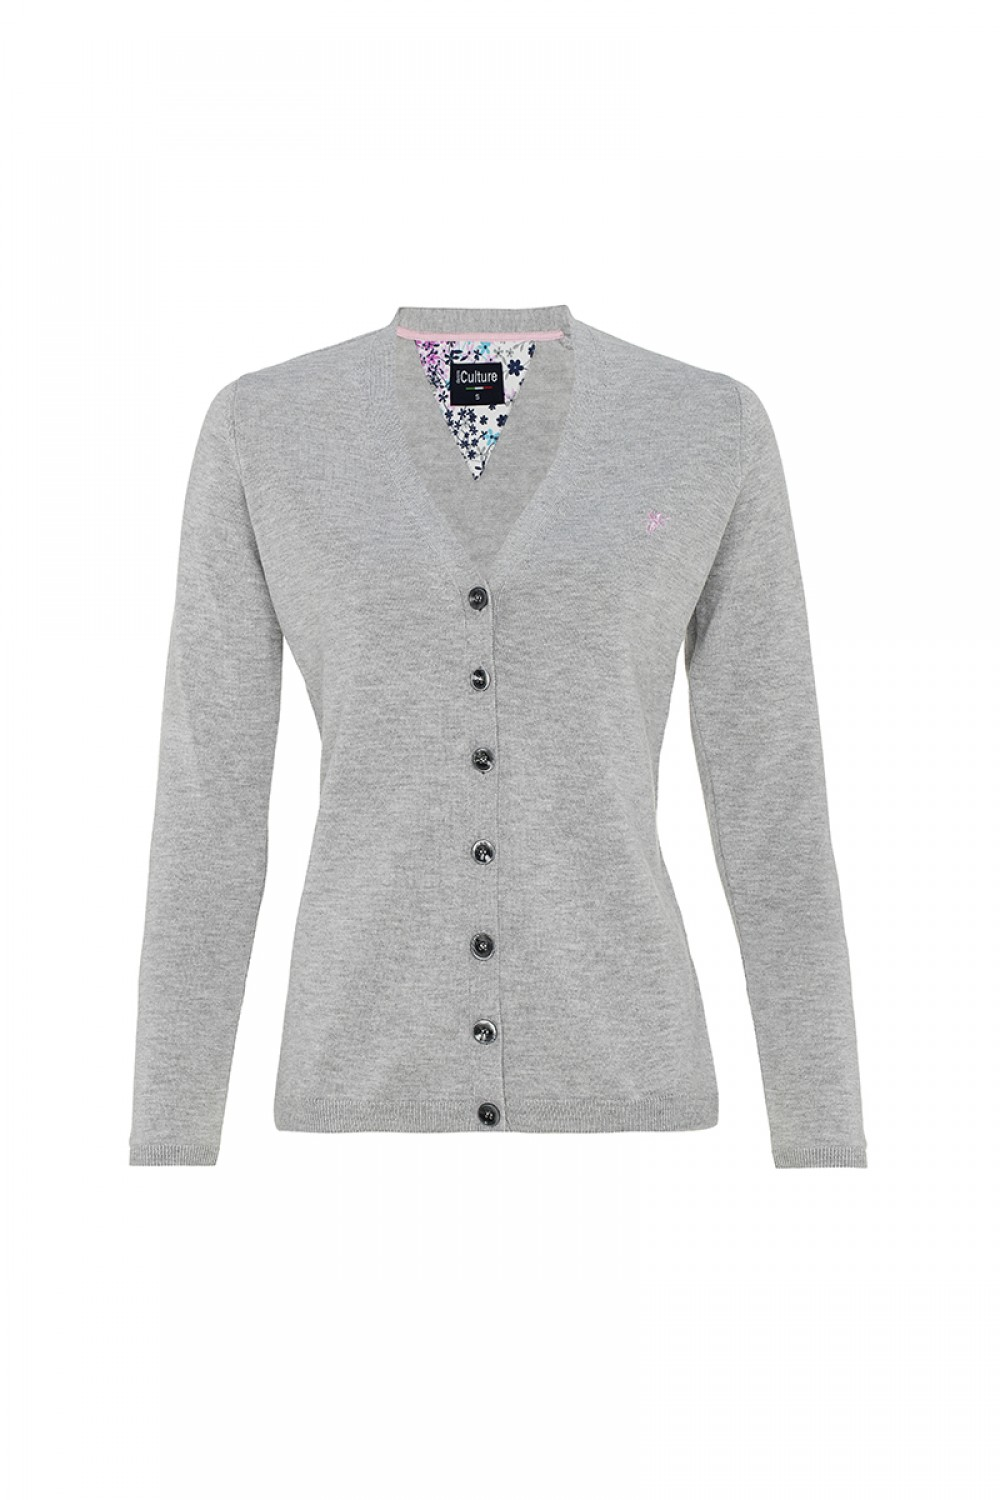 Women's Cardigan Button V-neck Heather Gray